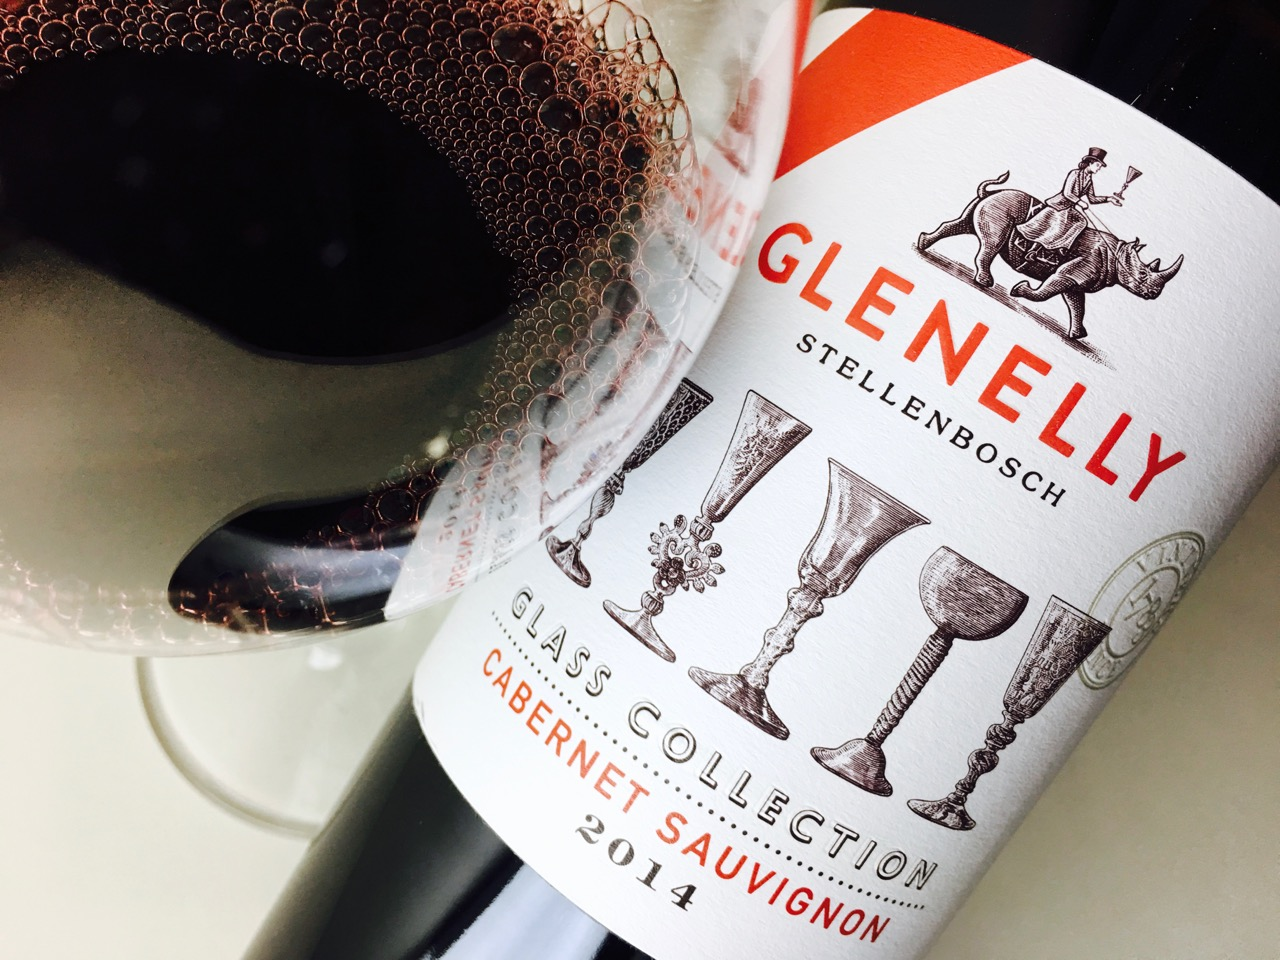 2014 Glenelly Cabernet Sauvignon Glass Collection Stellenbosch